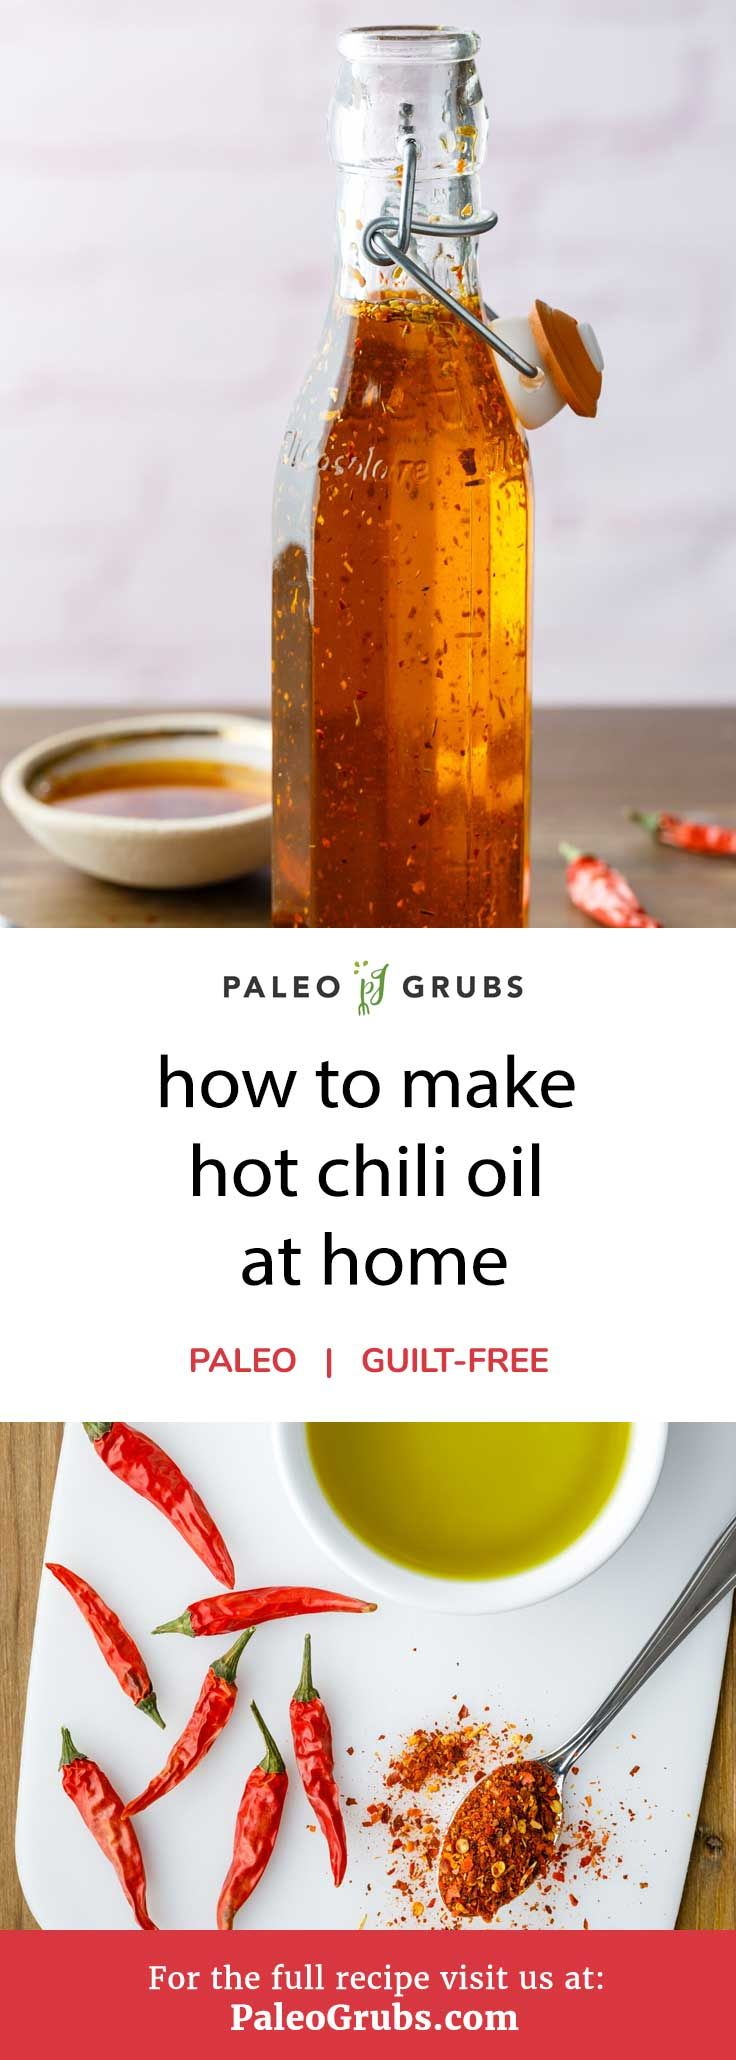 Looking for something that is quick and easy to whip up but will still add quite a bit of heat to your favorite foods? If so, you're in luck as this recipe for chili oil is incredibly simple to prepare. It only requires two simple ingredients and 10 minutes of your time to make a delicious chili oil that can be used as a dipping sauce or added in as an ingredient when making your favorite spicy dish.